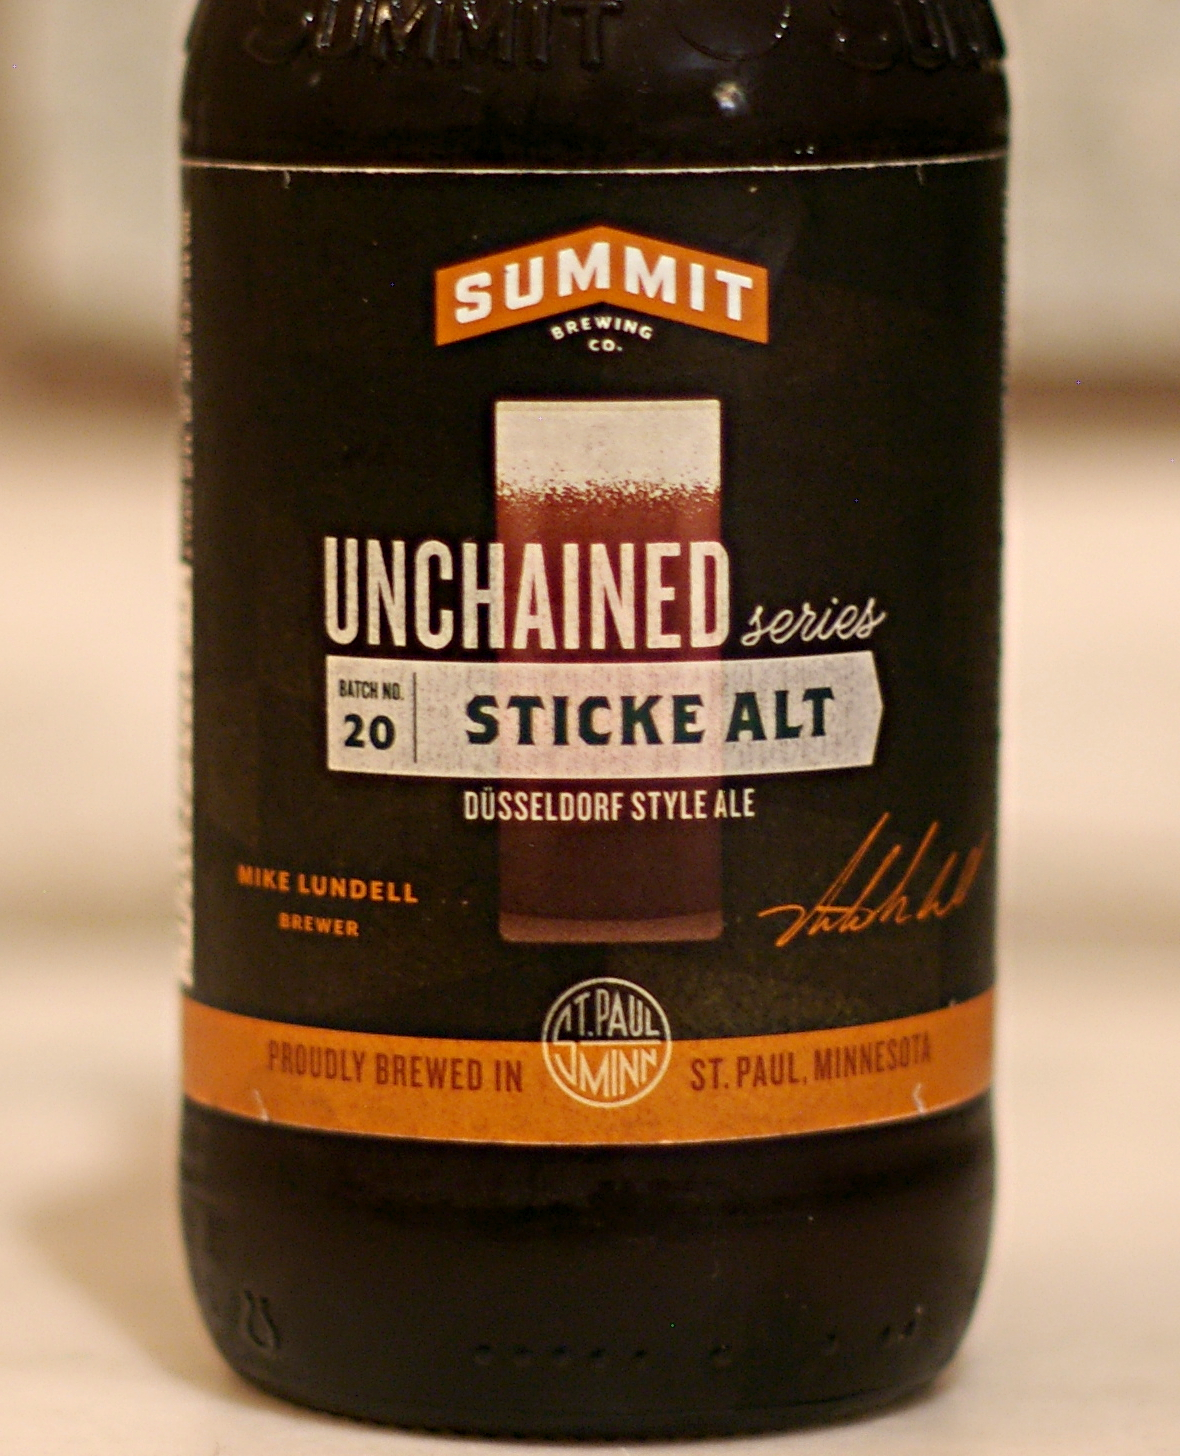 Summit Sticke Alt label